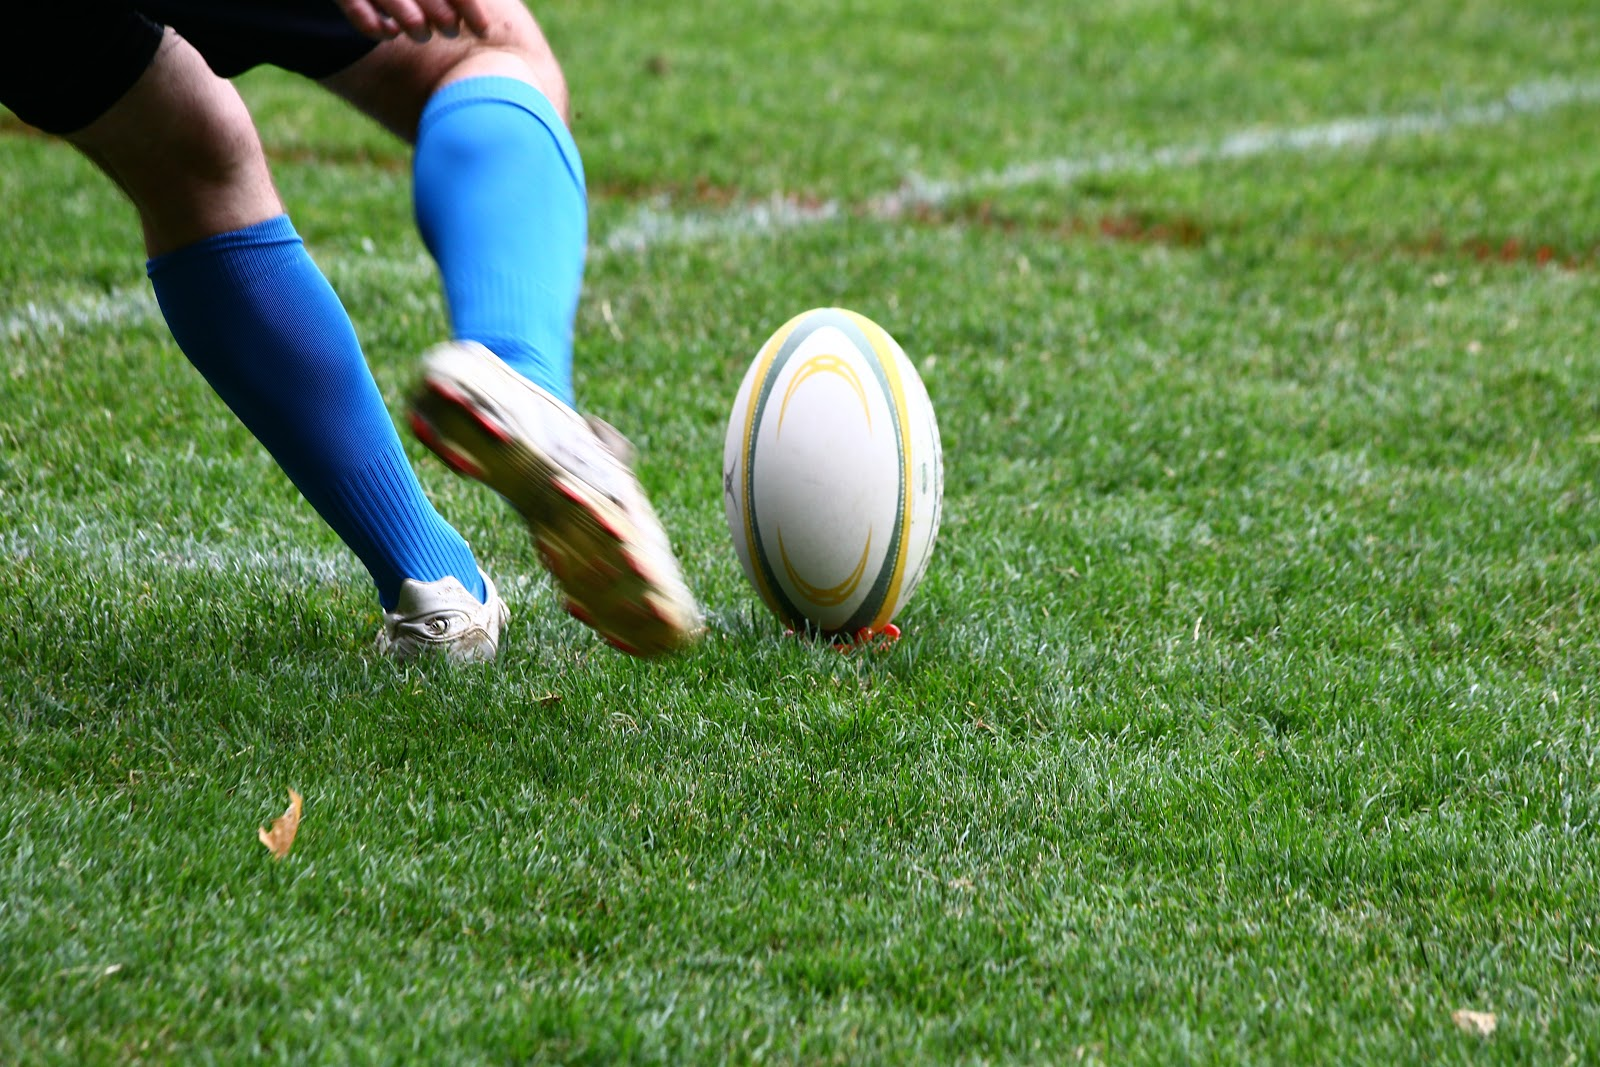 Man kicking a rugby ball on a brightly lit outdoor field where pest control services assess the risk of pest infestations